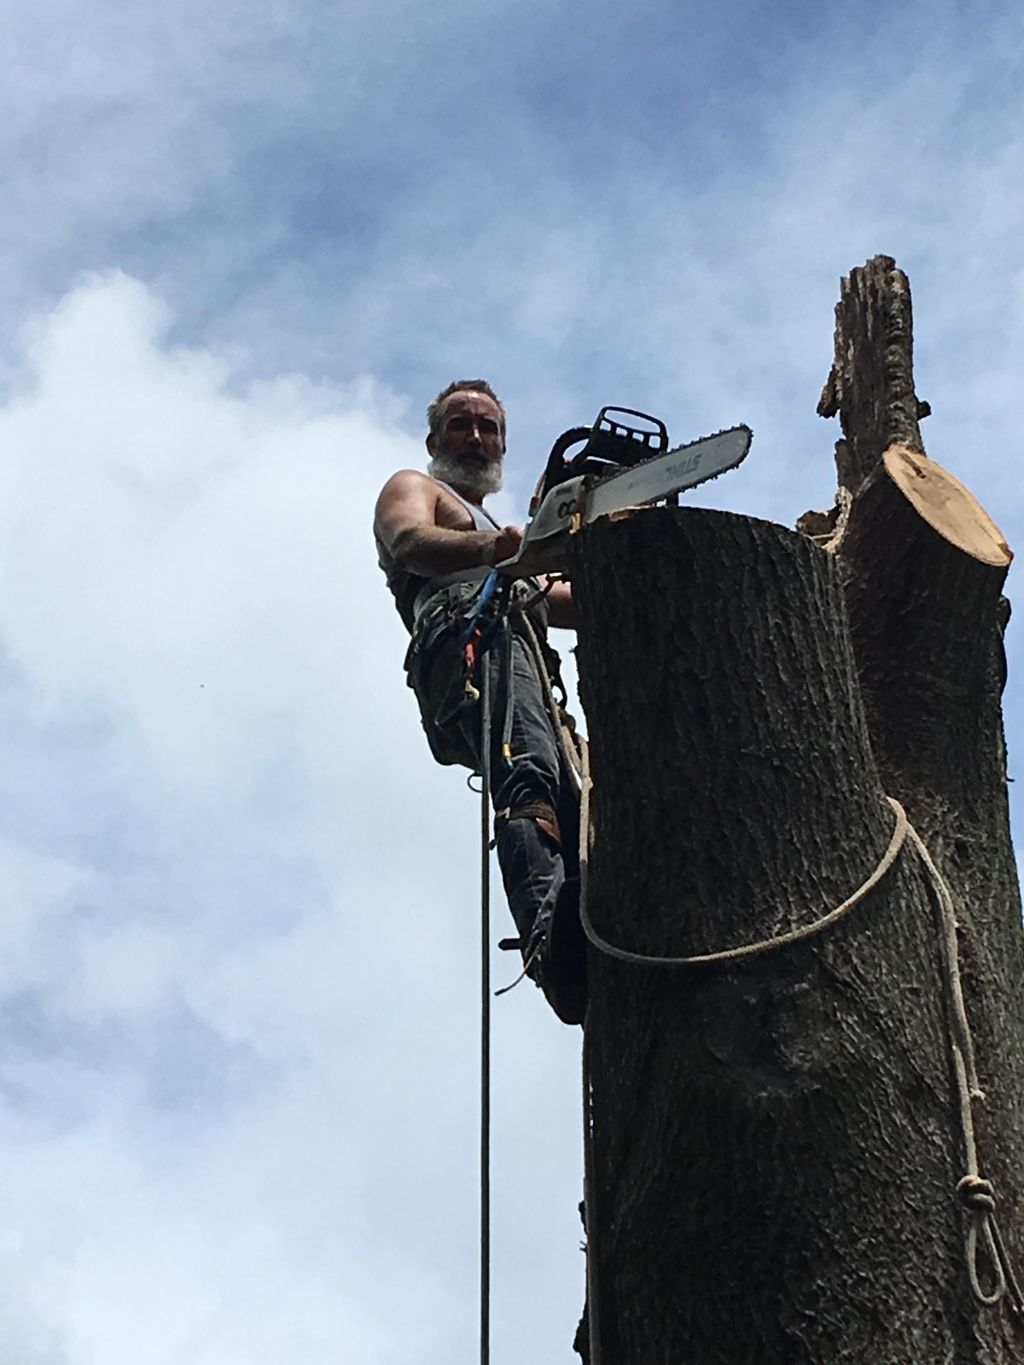 All-American Tree Service